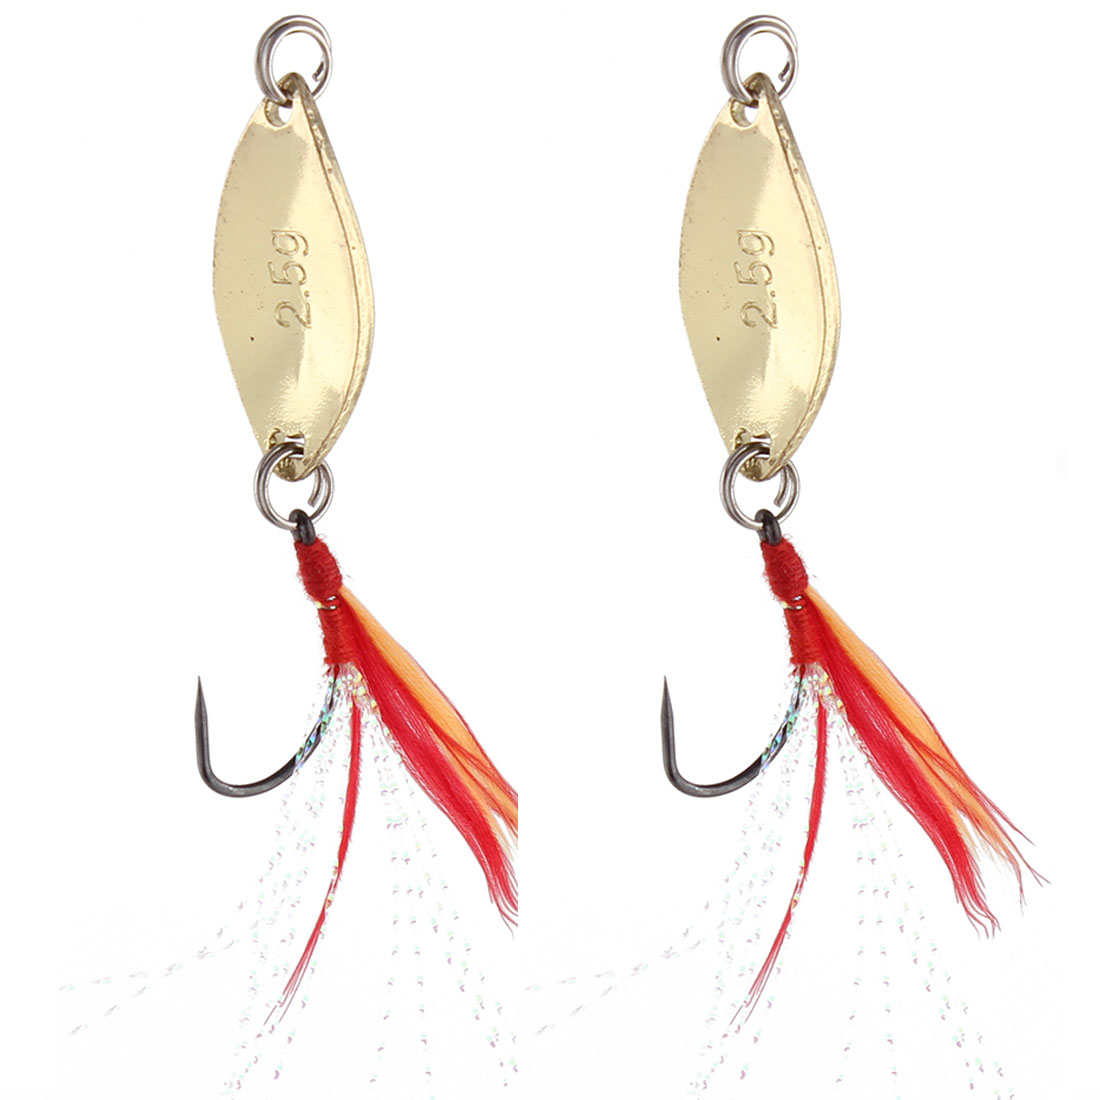 Fishing Fish Metal Angling Reflective Barb Lure Hooks Gold Tone 2 Pcs